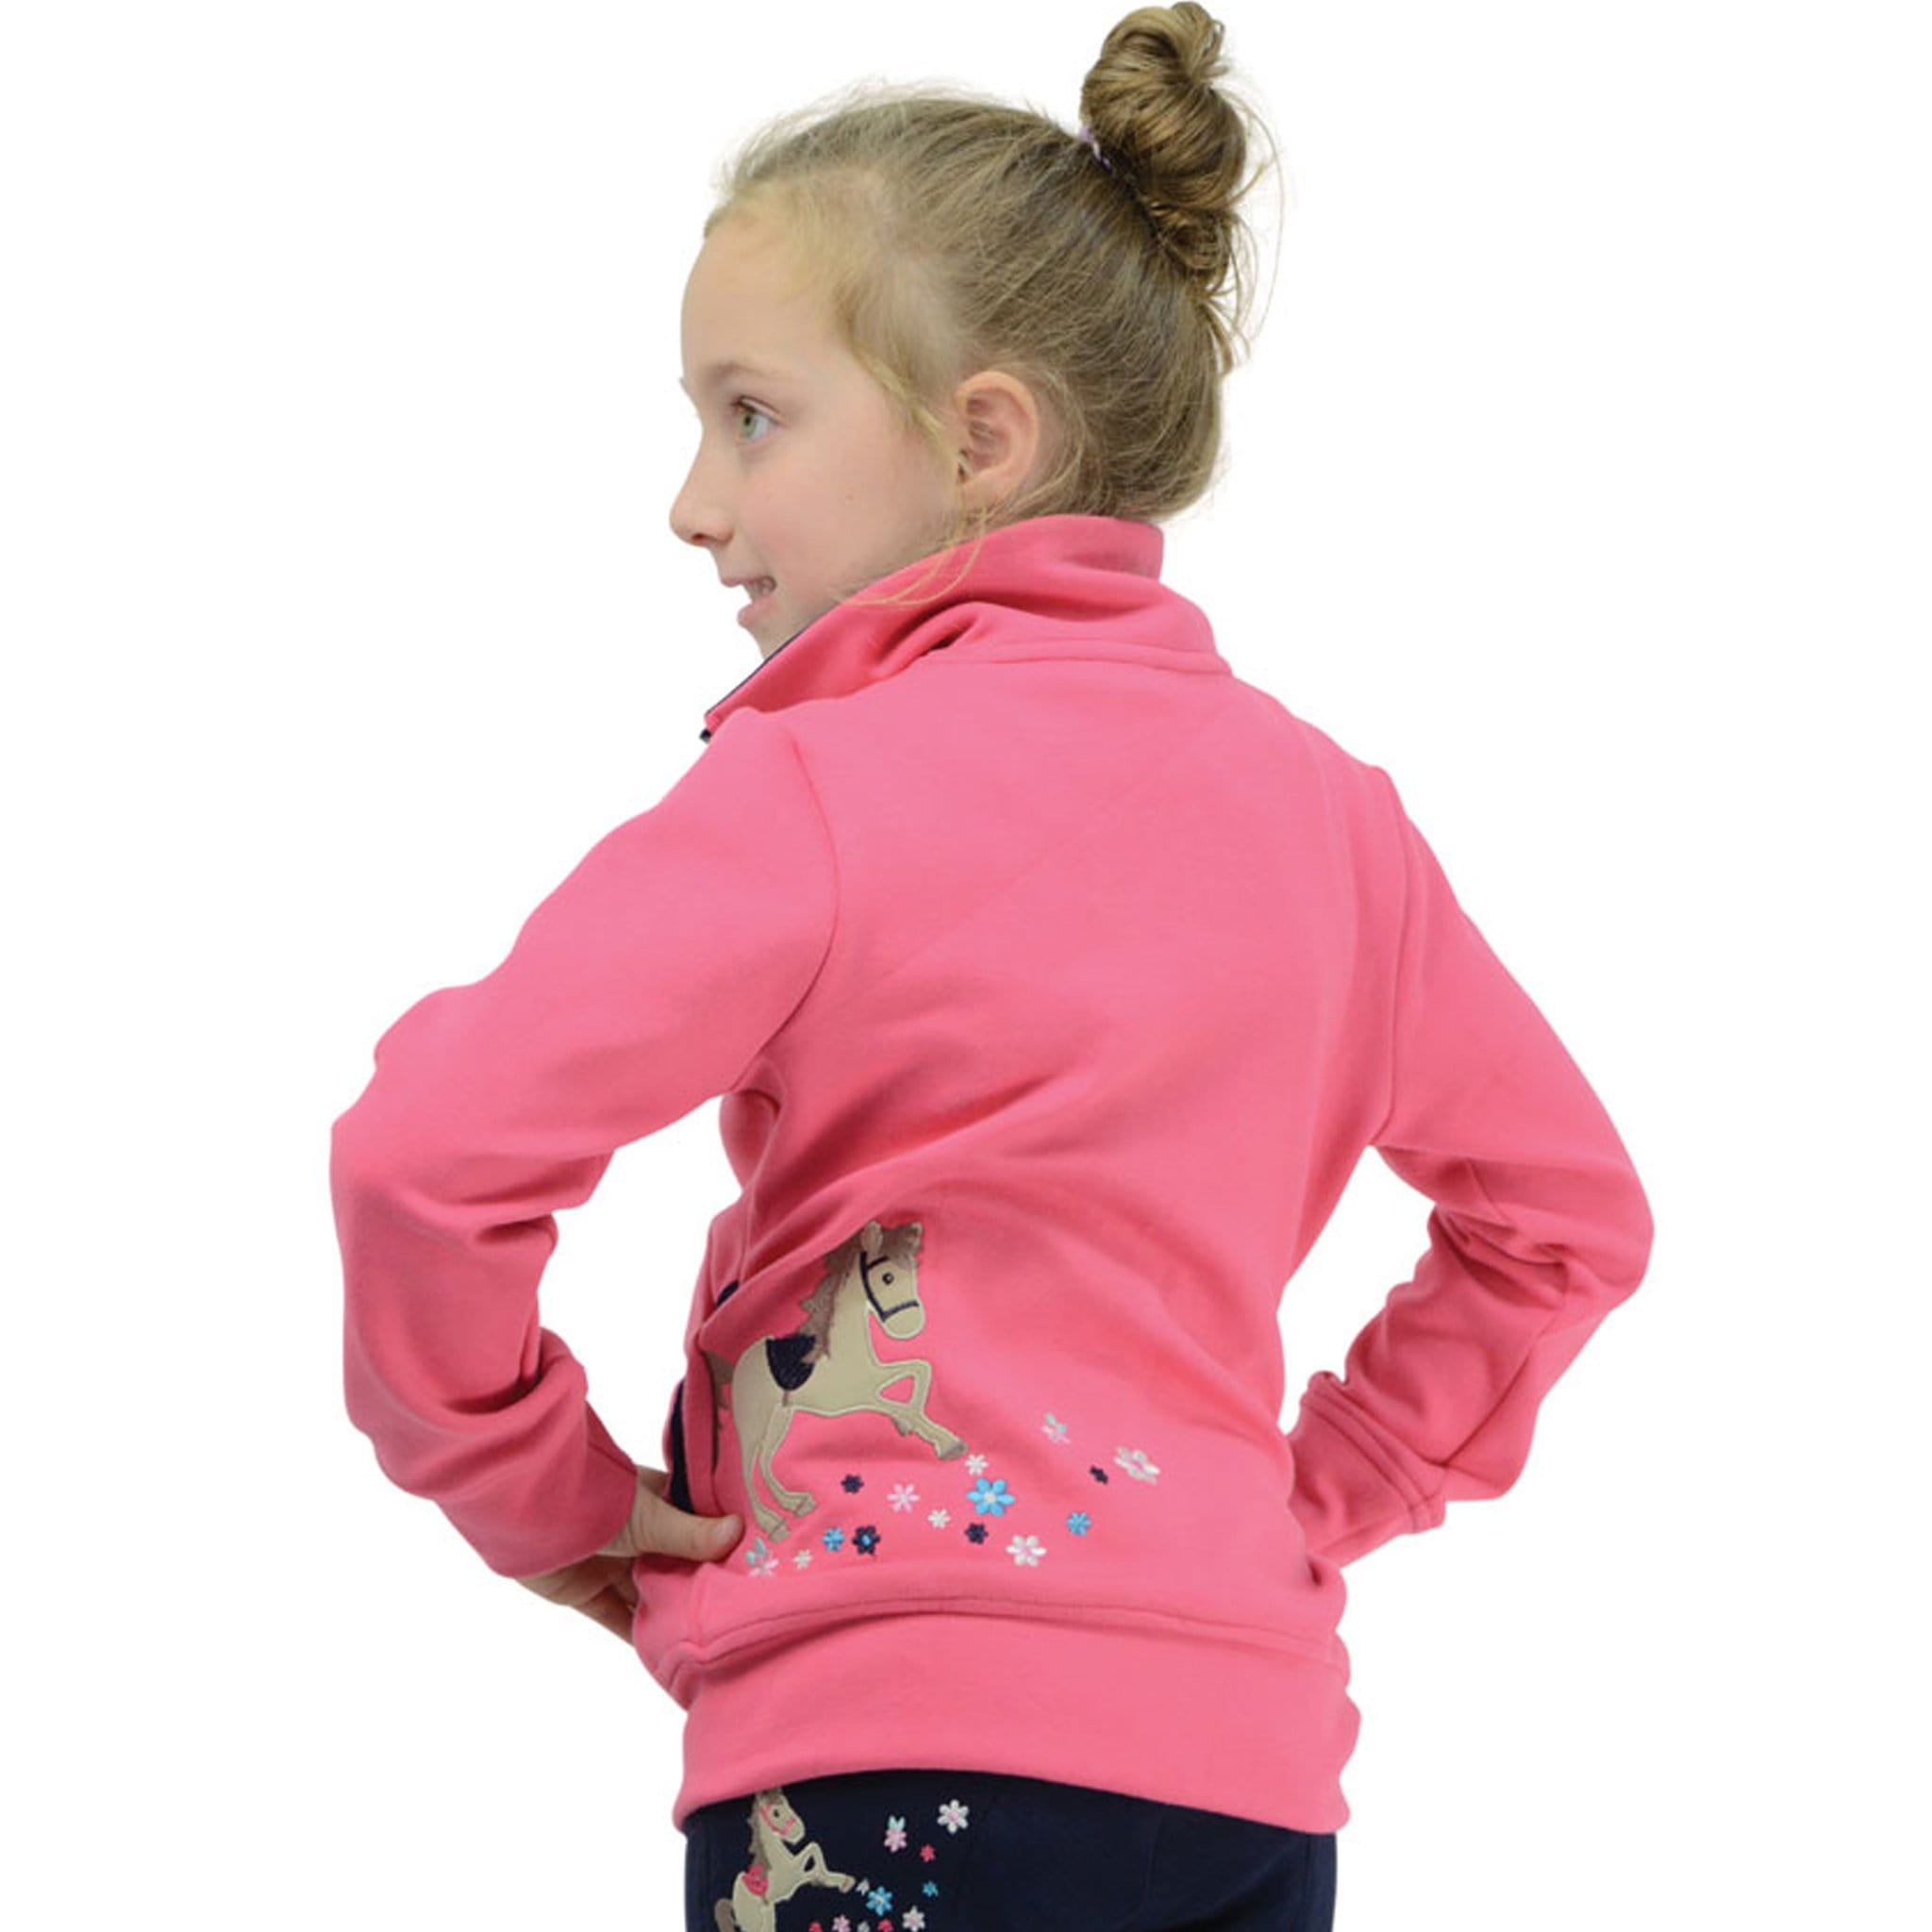 Hy Little Rider Felicity Flower Fleece Side And Back View 17418.